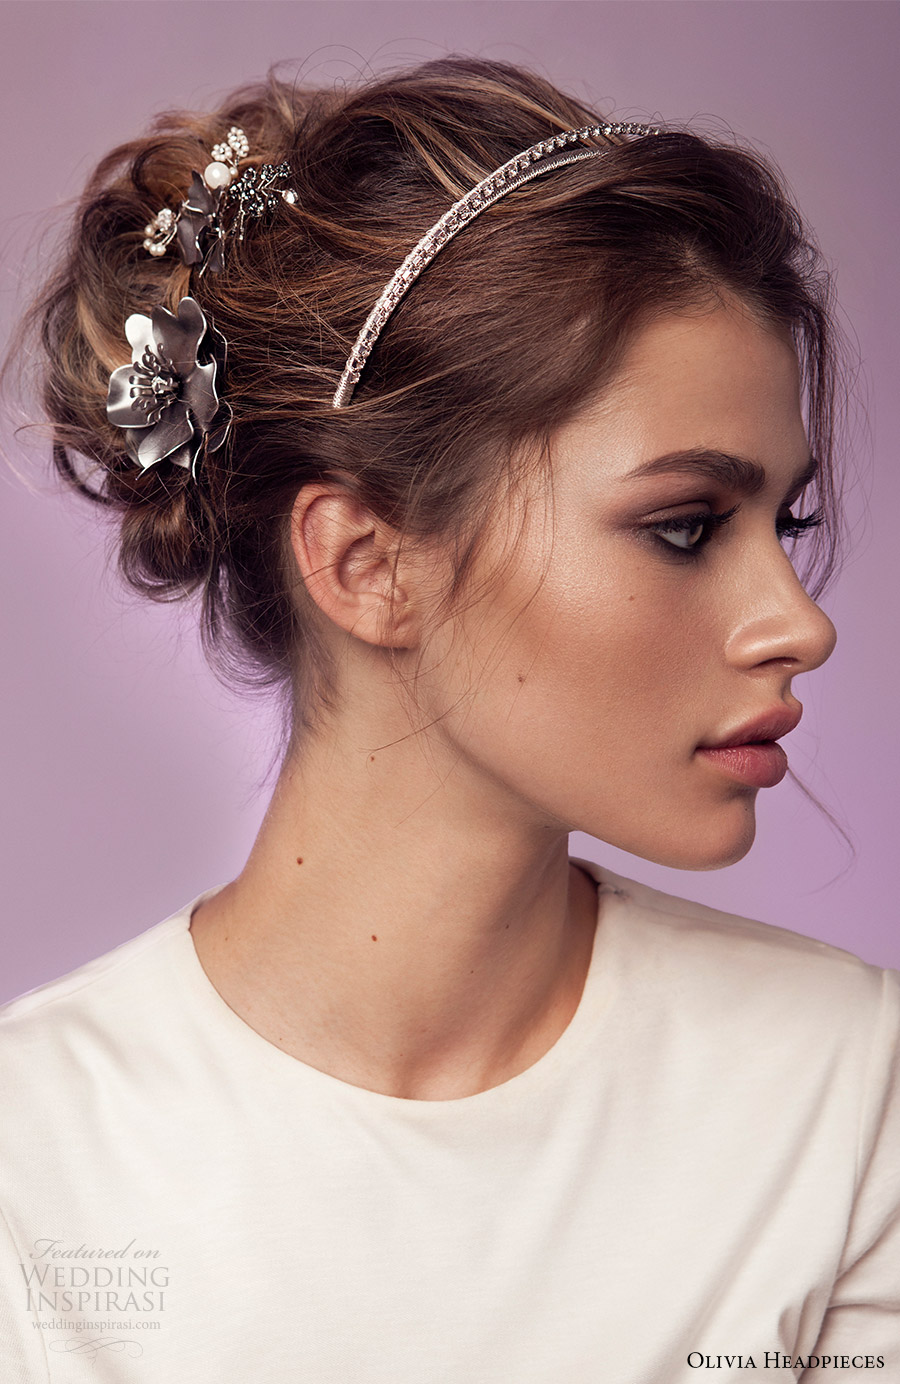 olivia headpieces 2017 bridal hair accessories wild at heart set crystal headband flower pins